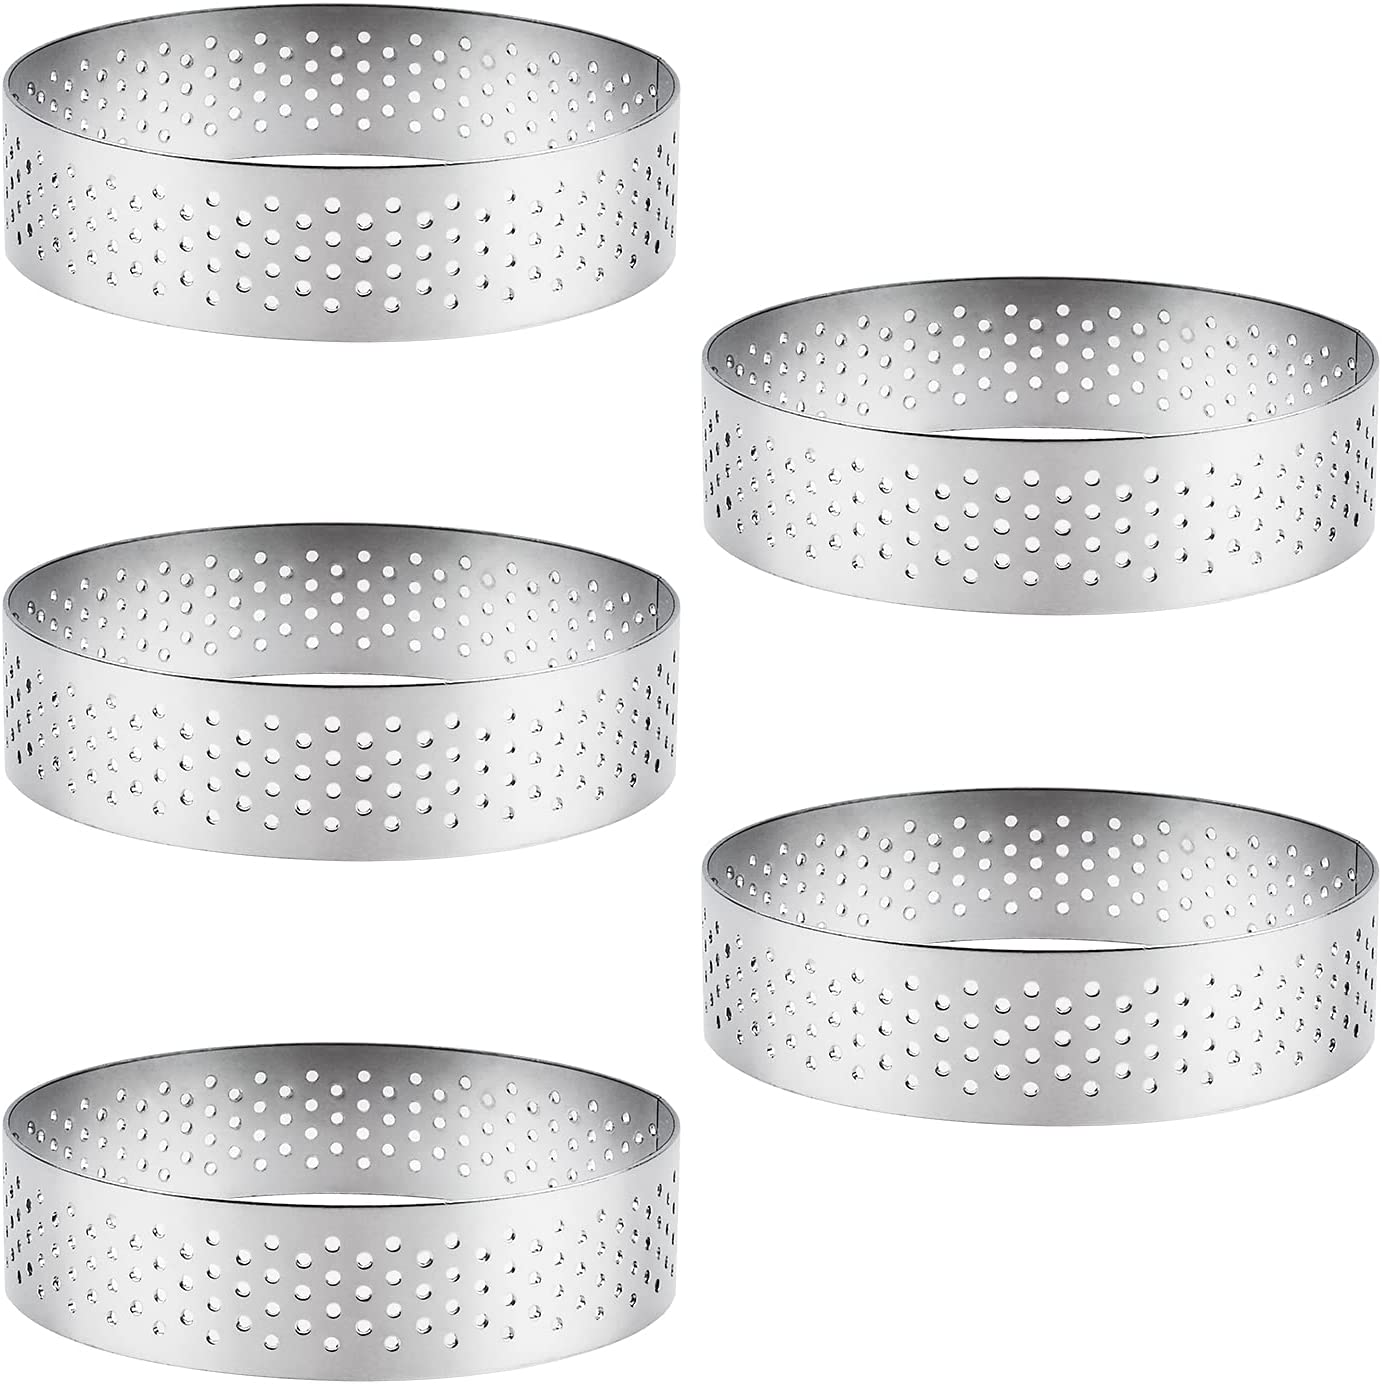 CRAFFANCY 5Pcs Stainless Steel Over item handling ☆ Mousse Molds Cake Selling Mol Ring Round